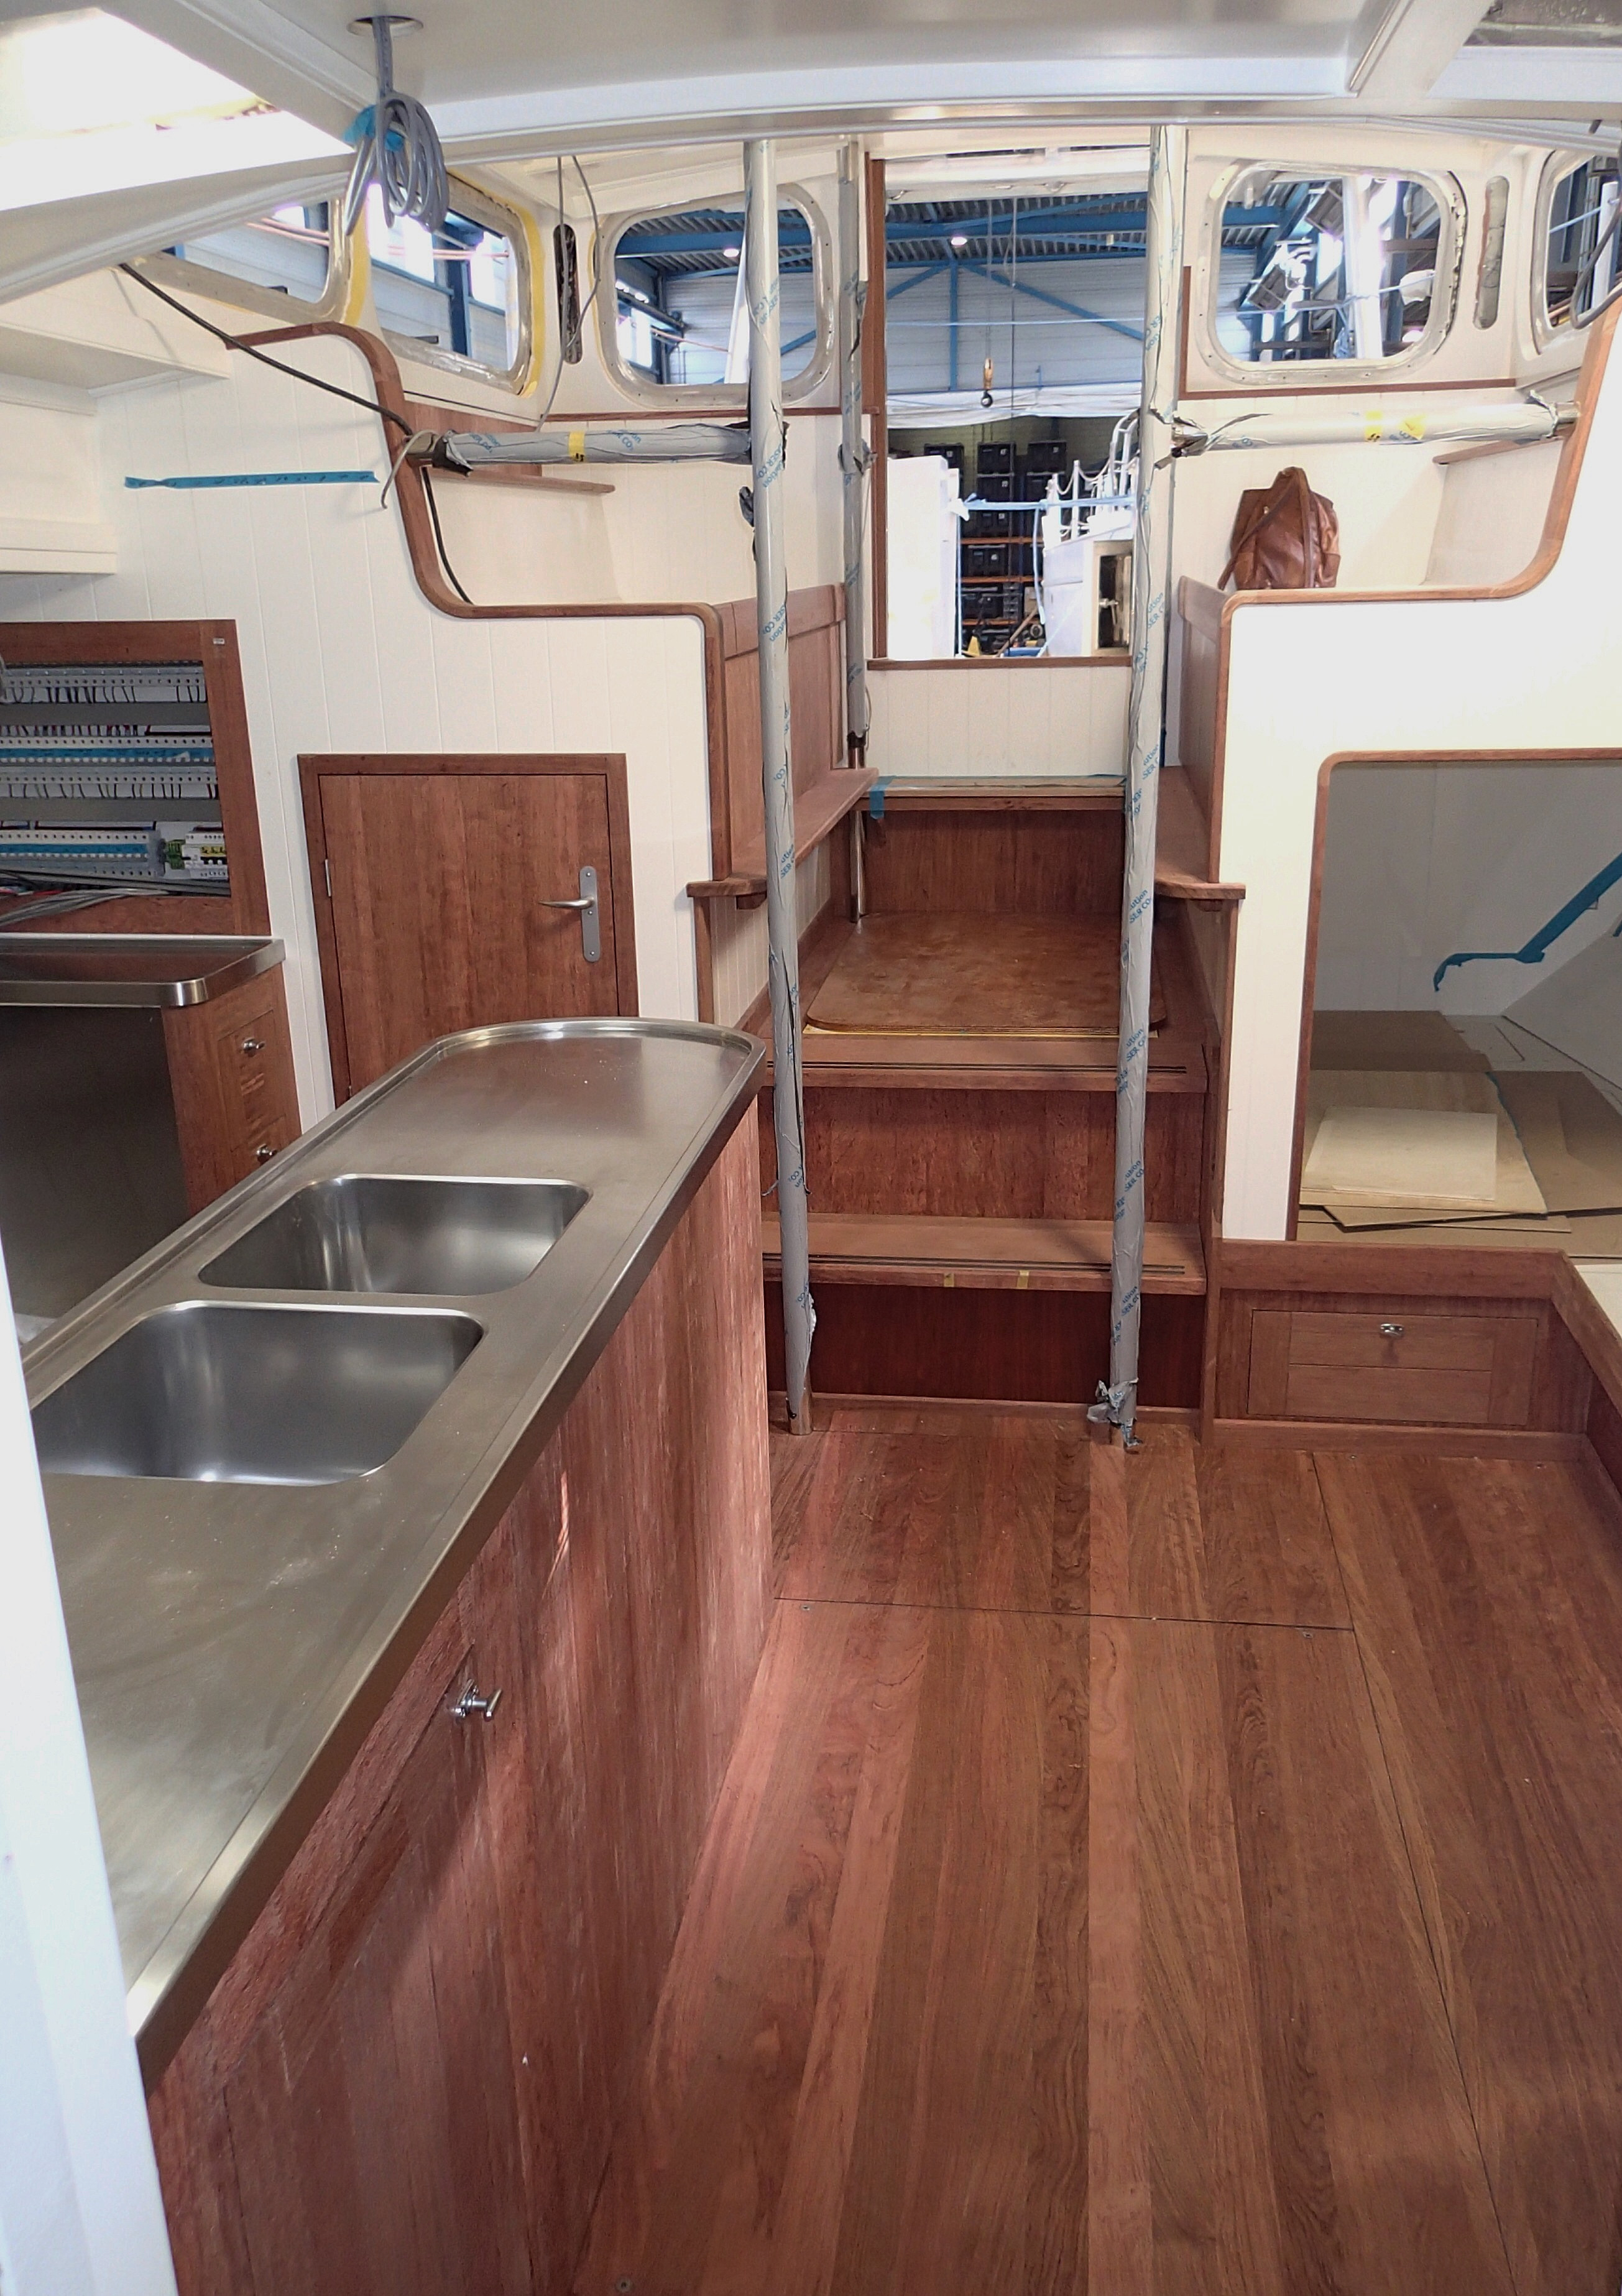 21 Best Hardwood Floor Refinishing Knoxville Tn 2021 free download hardwood floor refinishing knoxville tn of bestevaer 49 archive yachting and boating world forums in b1x5xdz